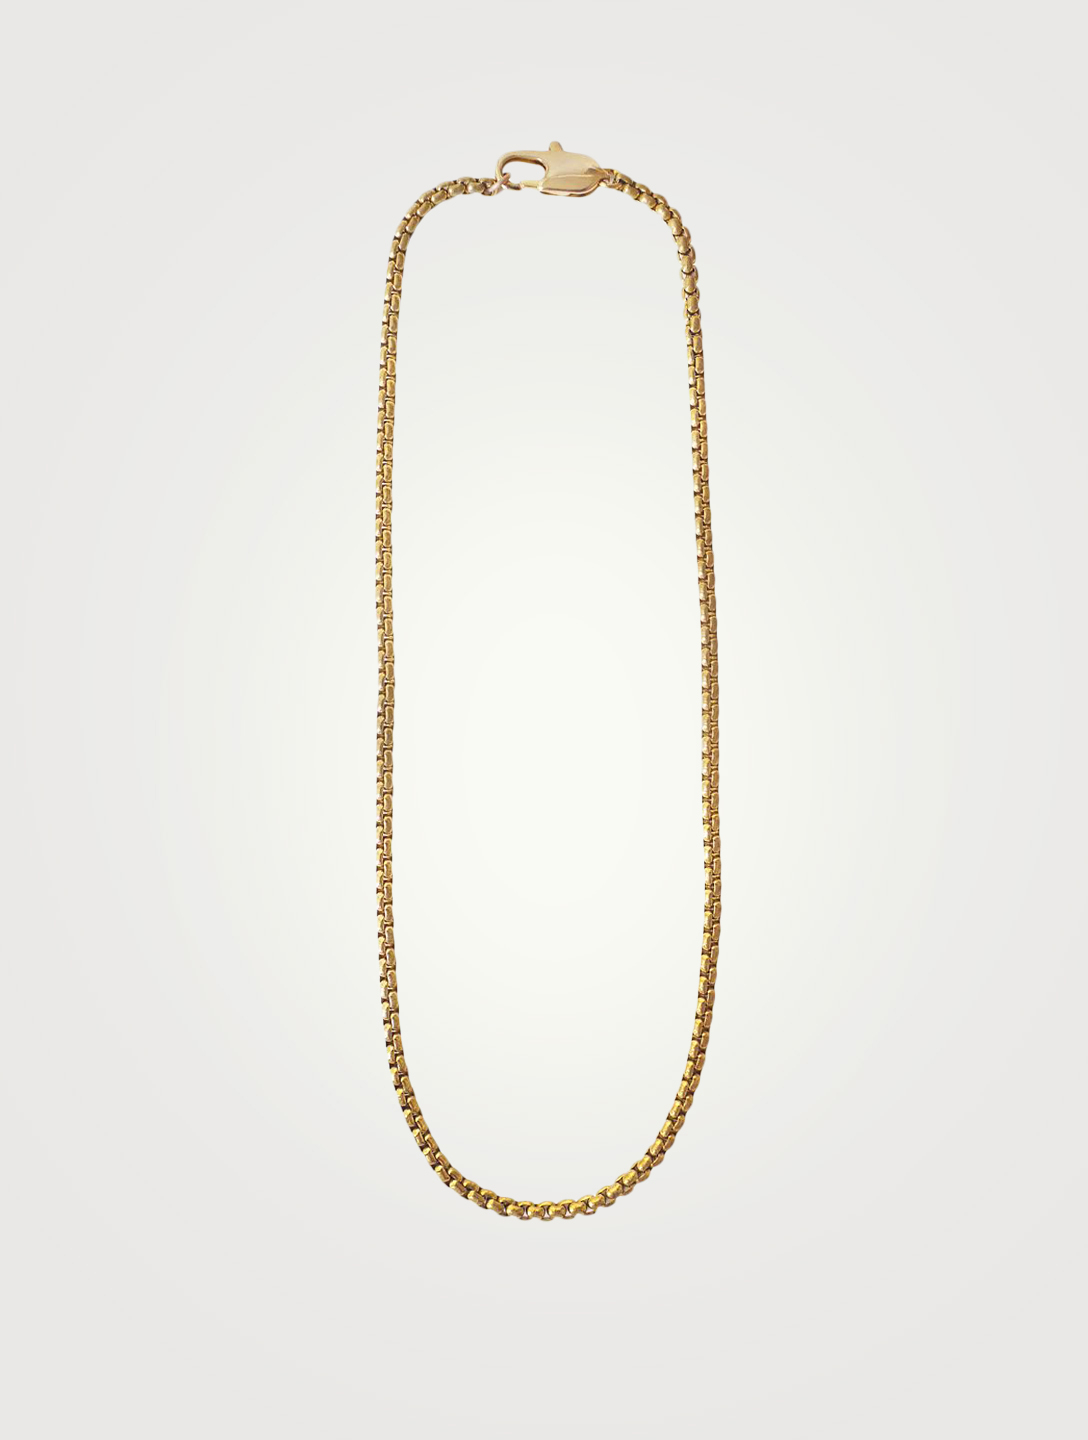 LAURA LOMBARDI 26-Inch 14K Gold Plated Box Chain Necklace Women's Metallic